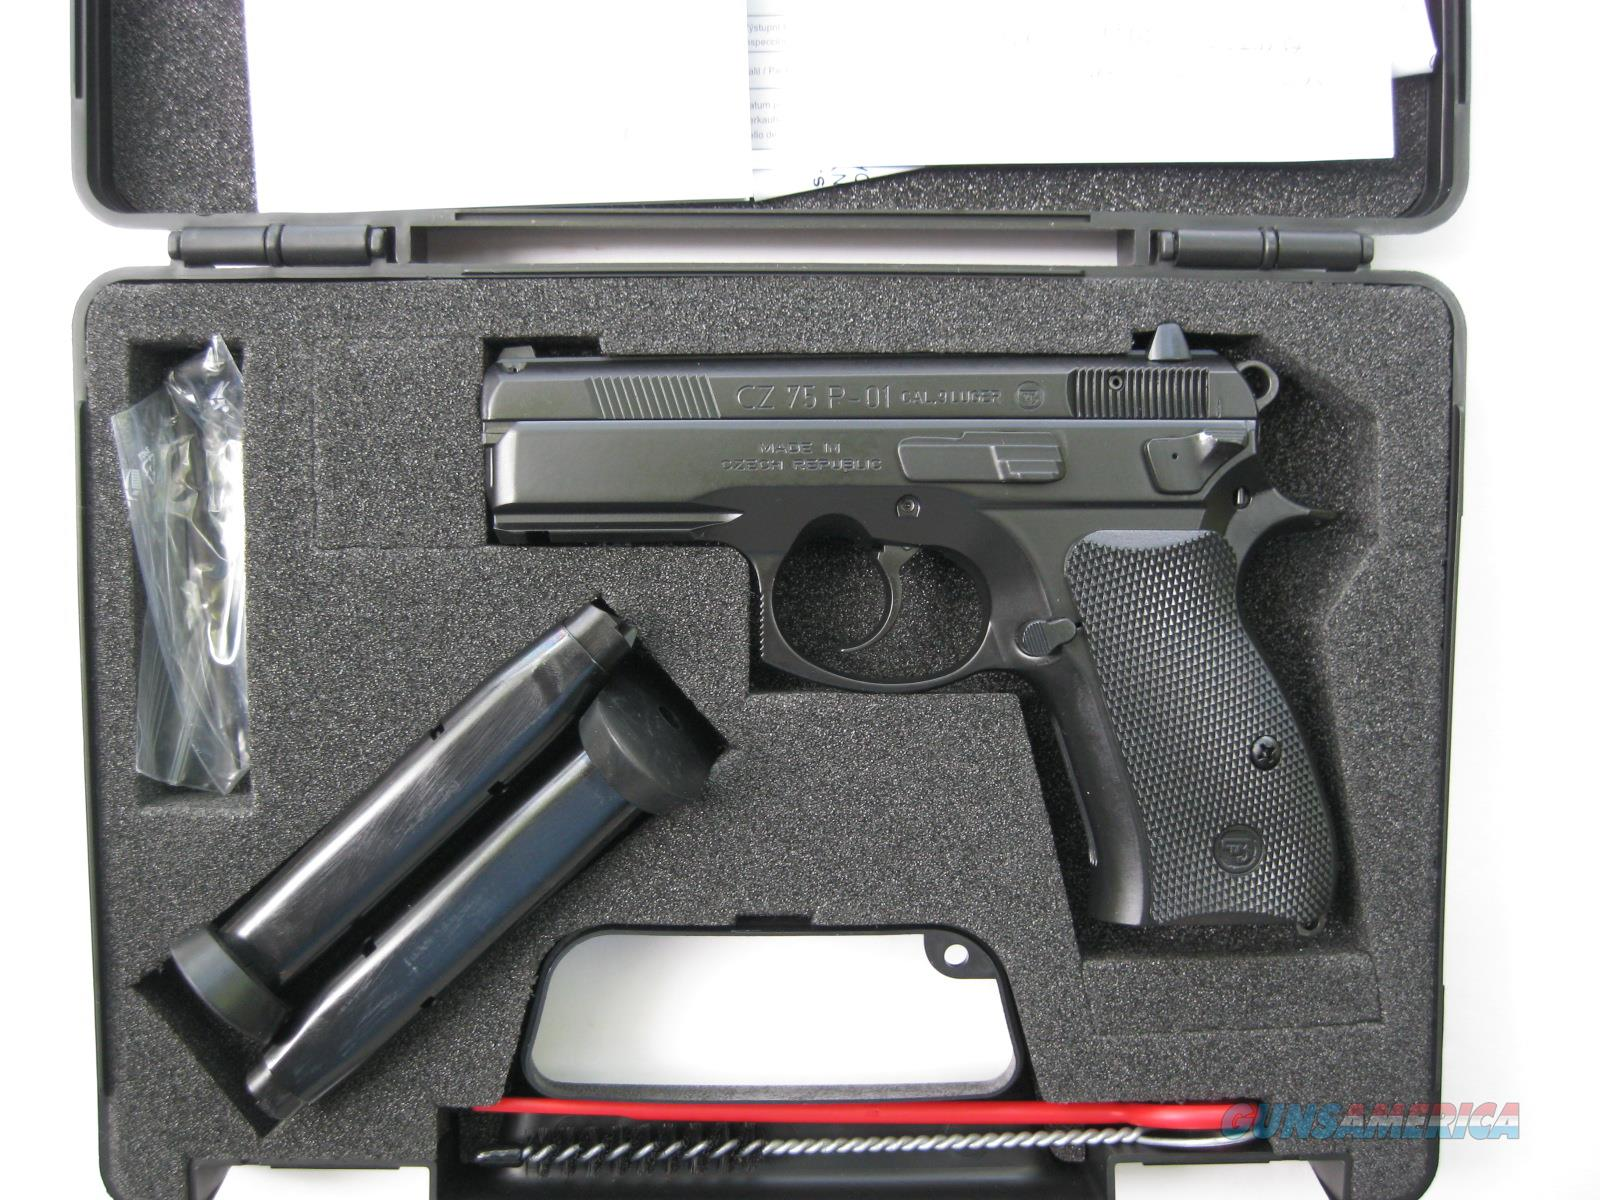 CZ-USA 75 P-01 9mm Compact LW Rail 14 Rd Decocker 91199 *NEW  Guns > Pistols > CZ Pistols